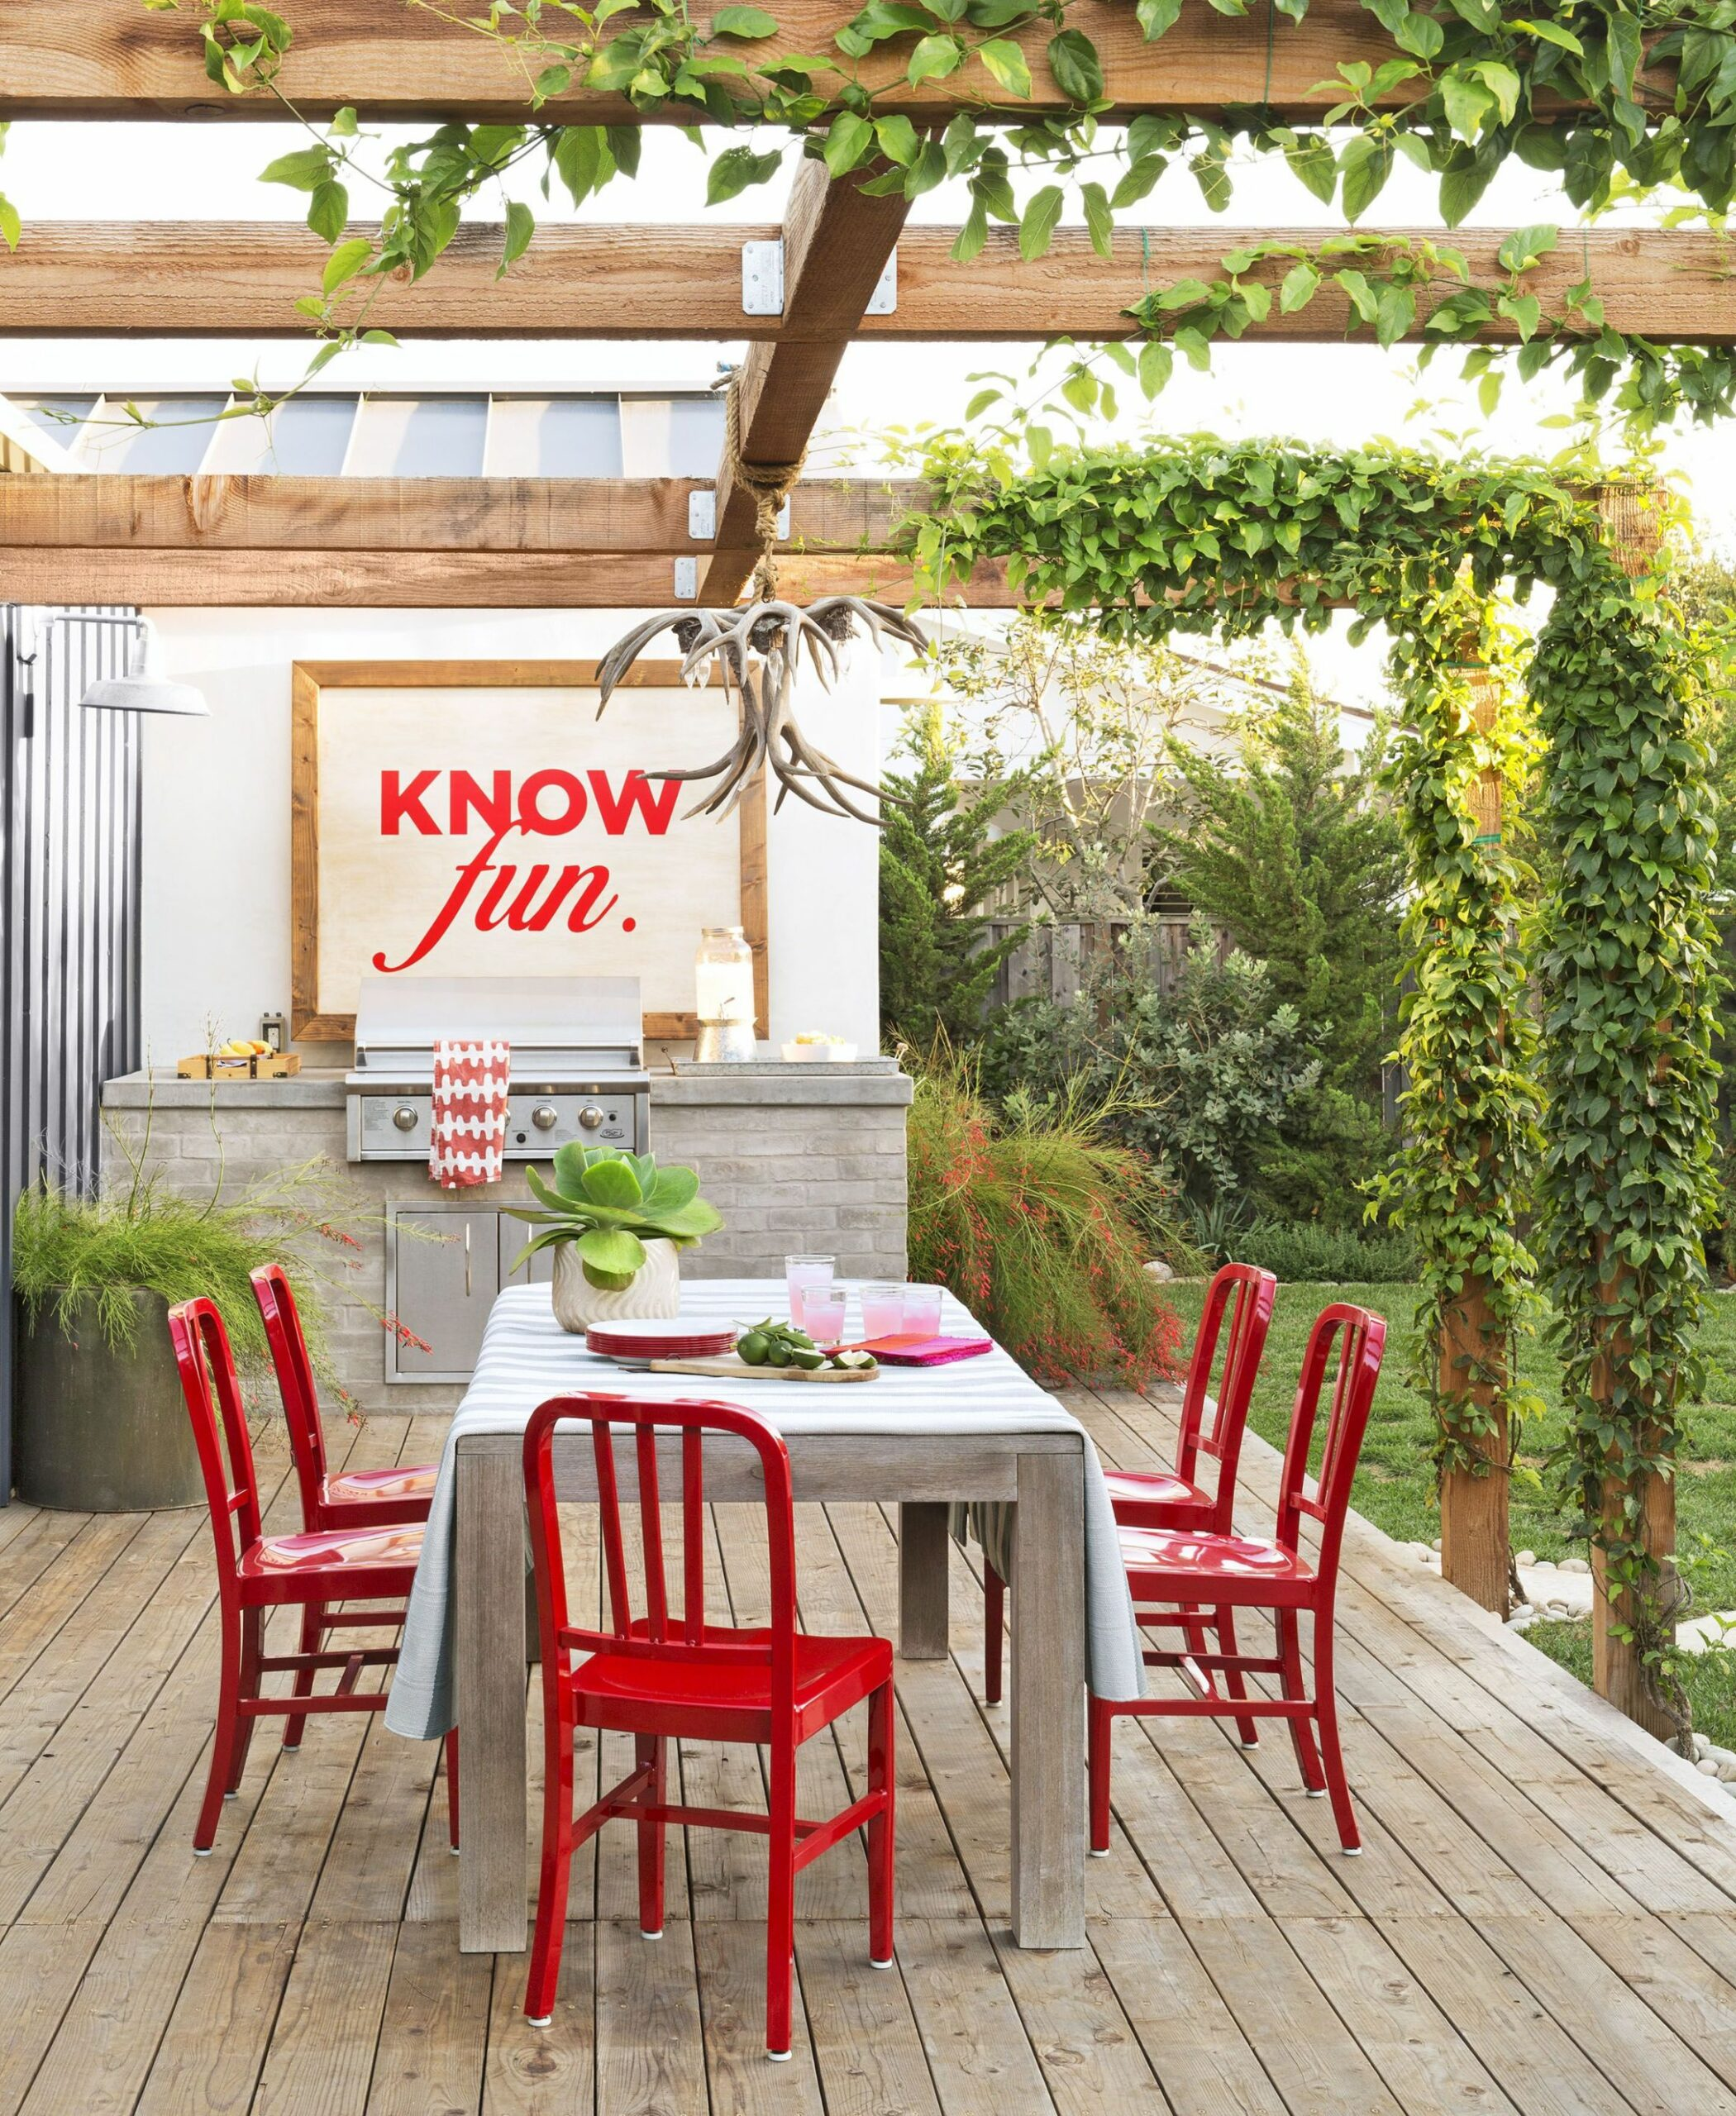 10 Best Outdoor Kitchen Ideas and Designs - Pictures of Beautiful ...